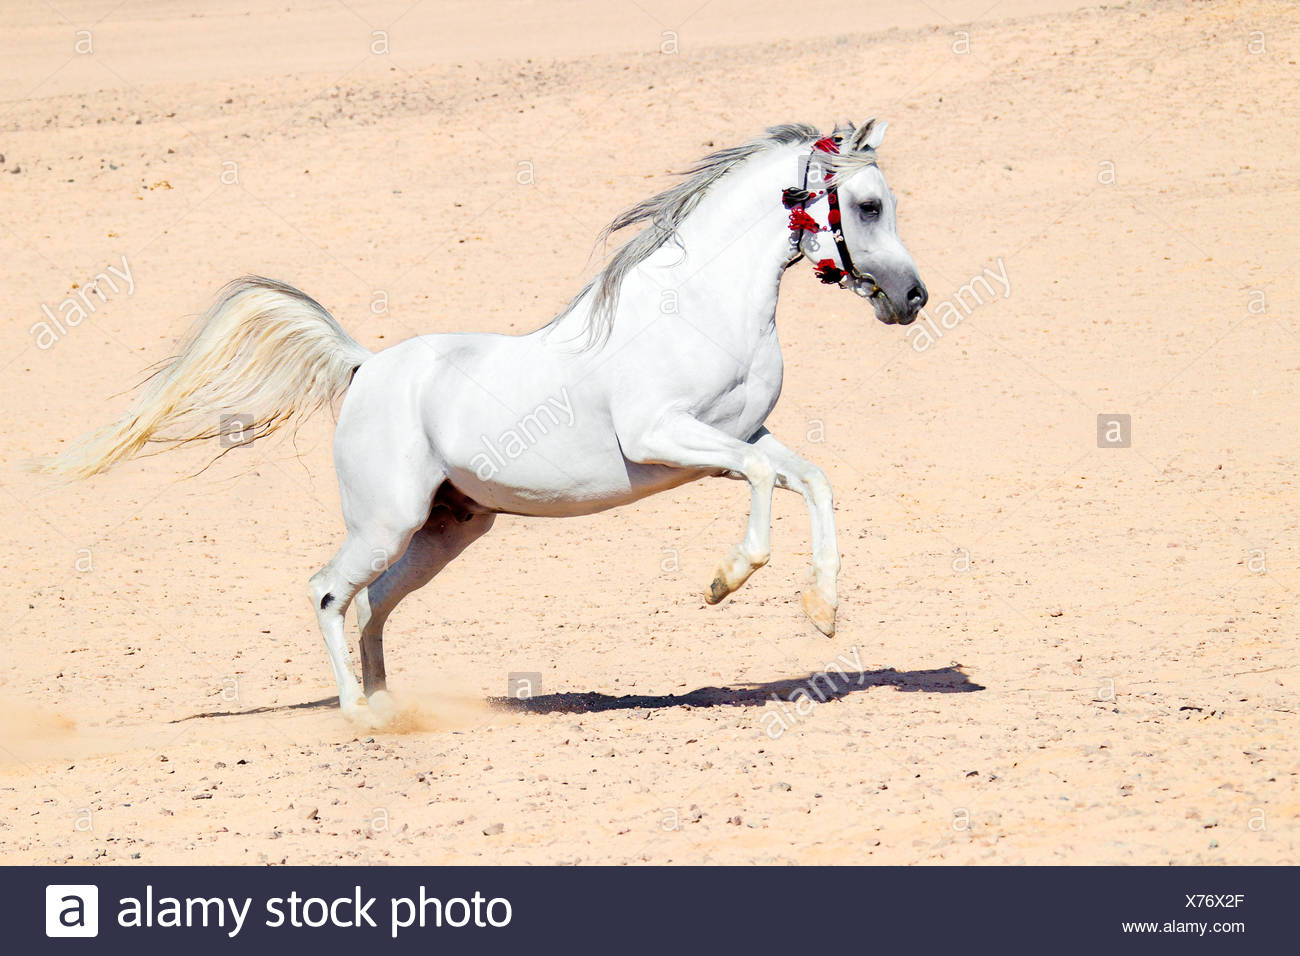 Arabian Horse Galloping In Sand Stock Photo Alamy